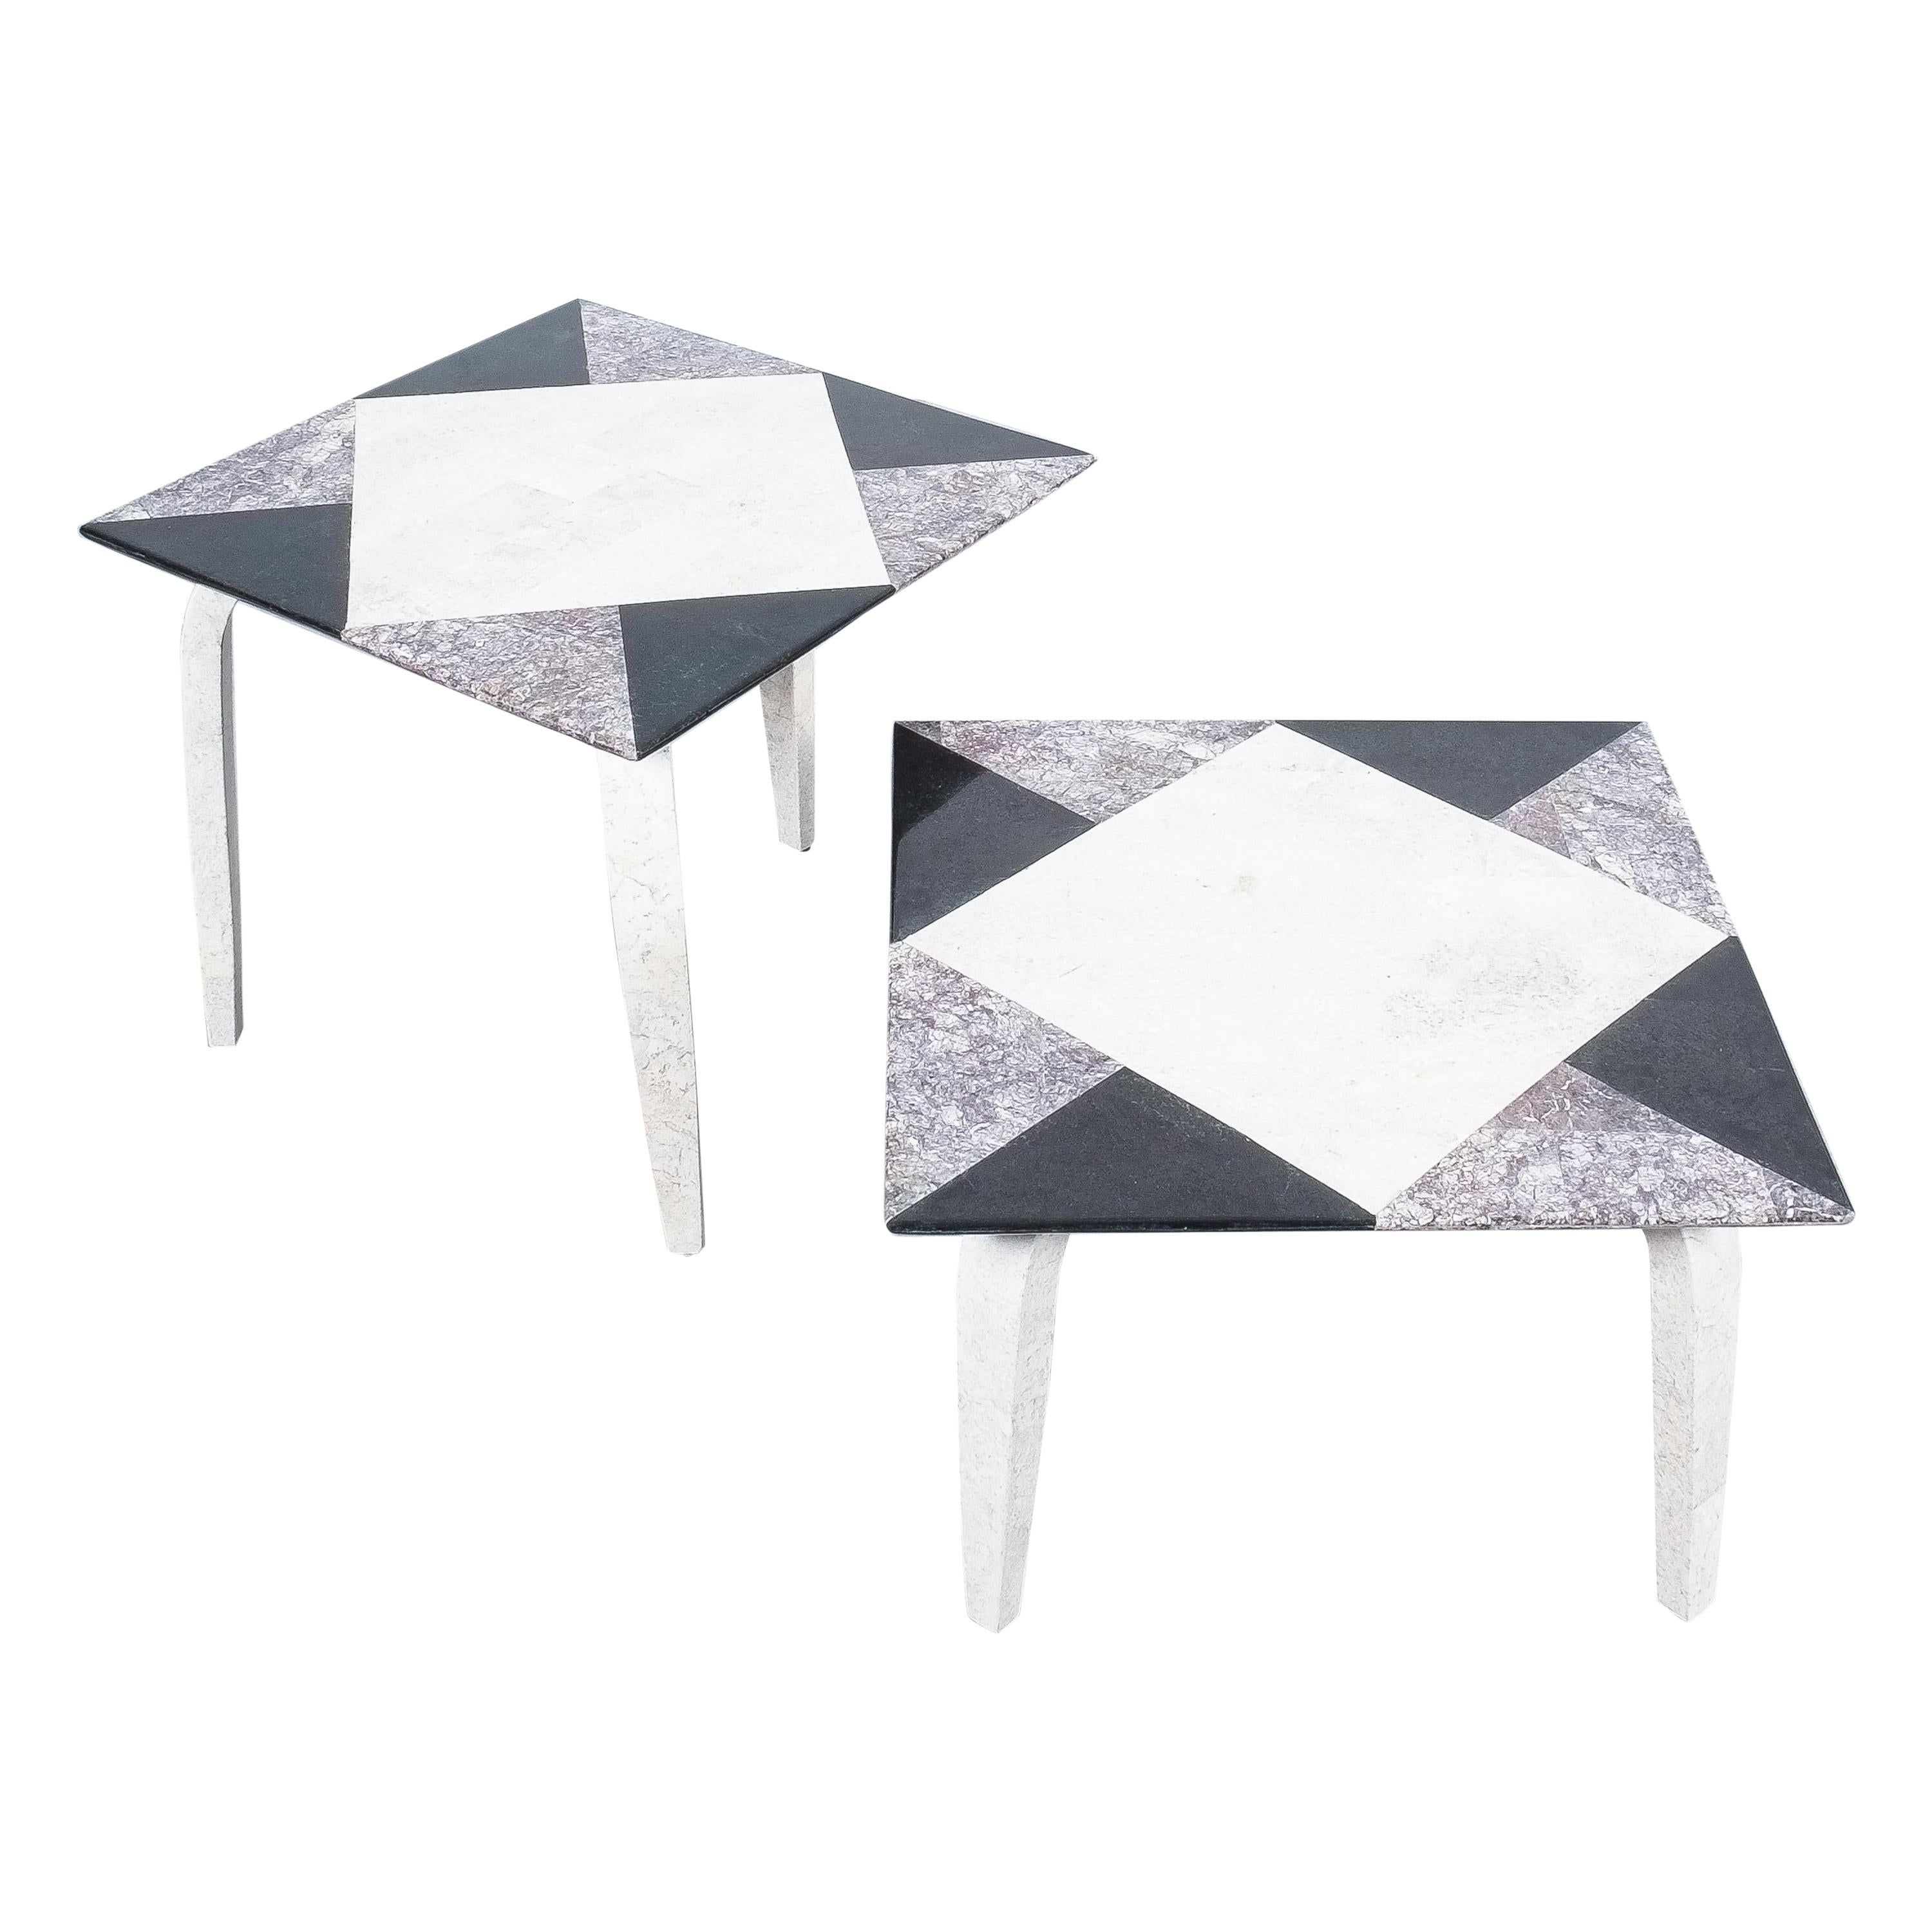 Side Tables From Mosaic Marble Tiles, Italy, circa 1970